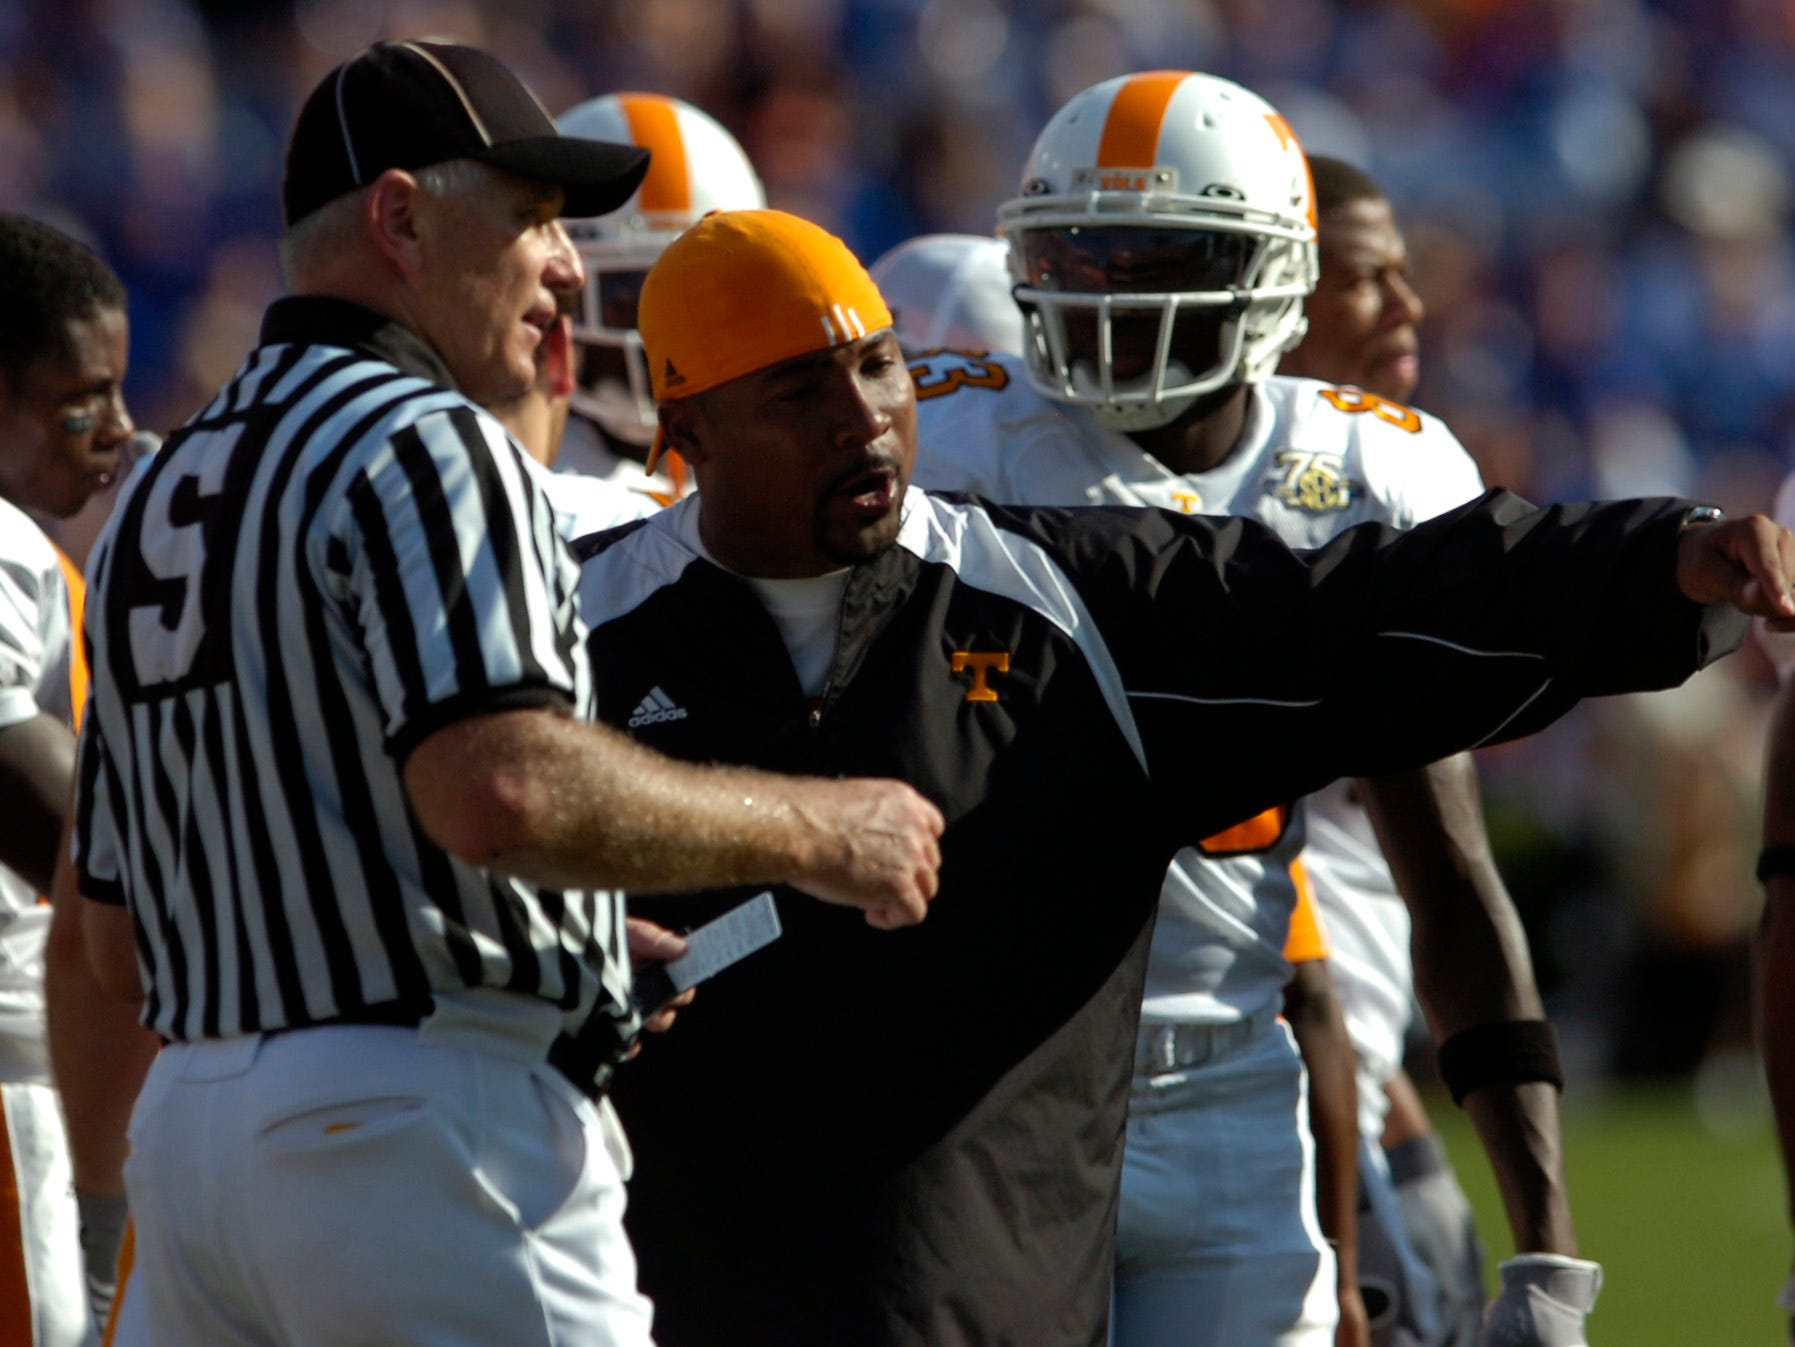 utfla.ASB#8410.jpg--SPORTS-- Tennessee coach Trooper Taylor inquires about a call during the Florida game. Florida won the game 59-20.